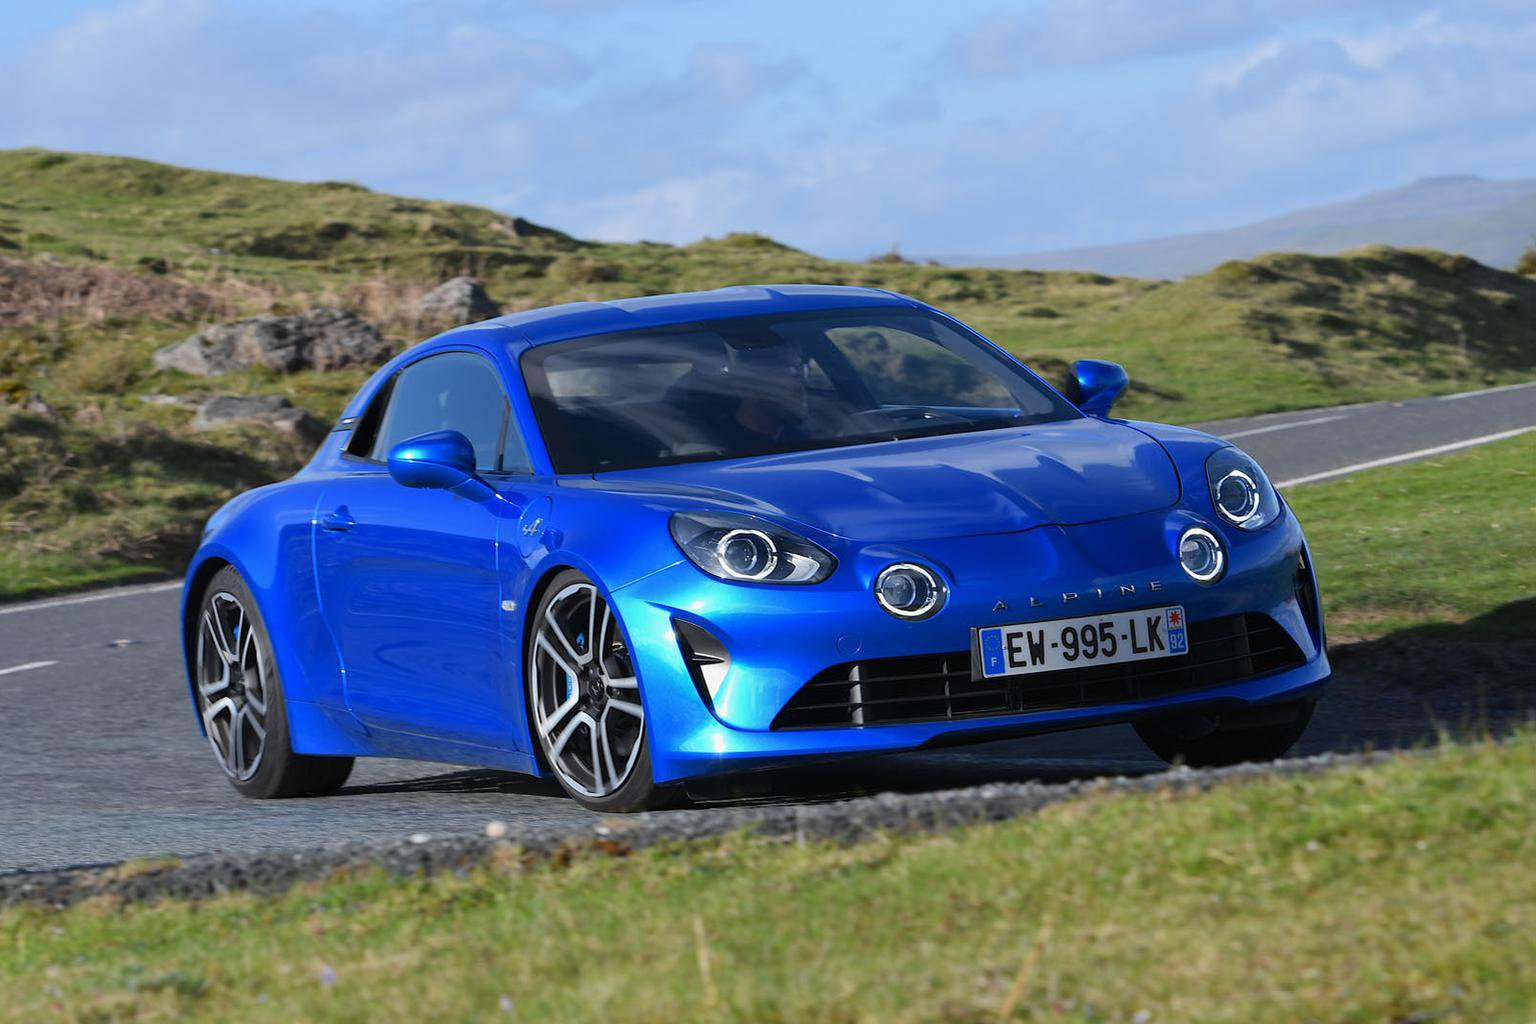 New Alpine A110 vs Audi TT RS vs Porsche Cayman